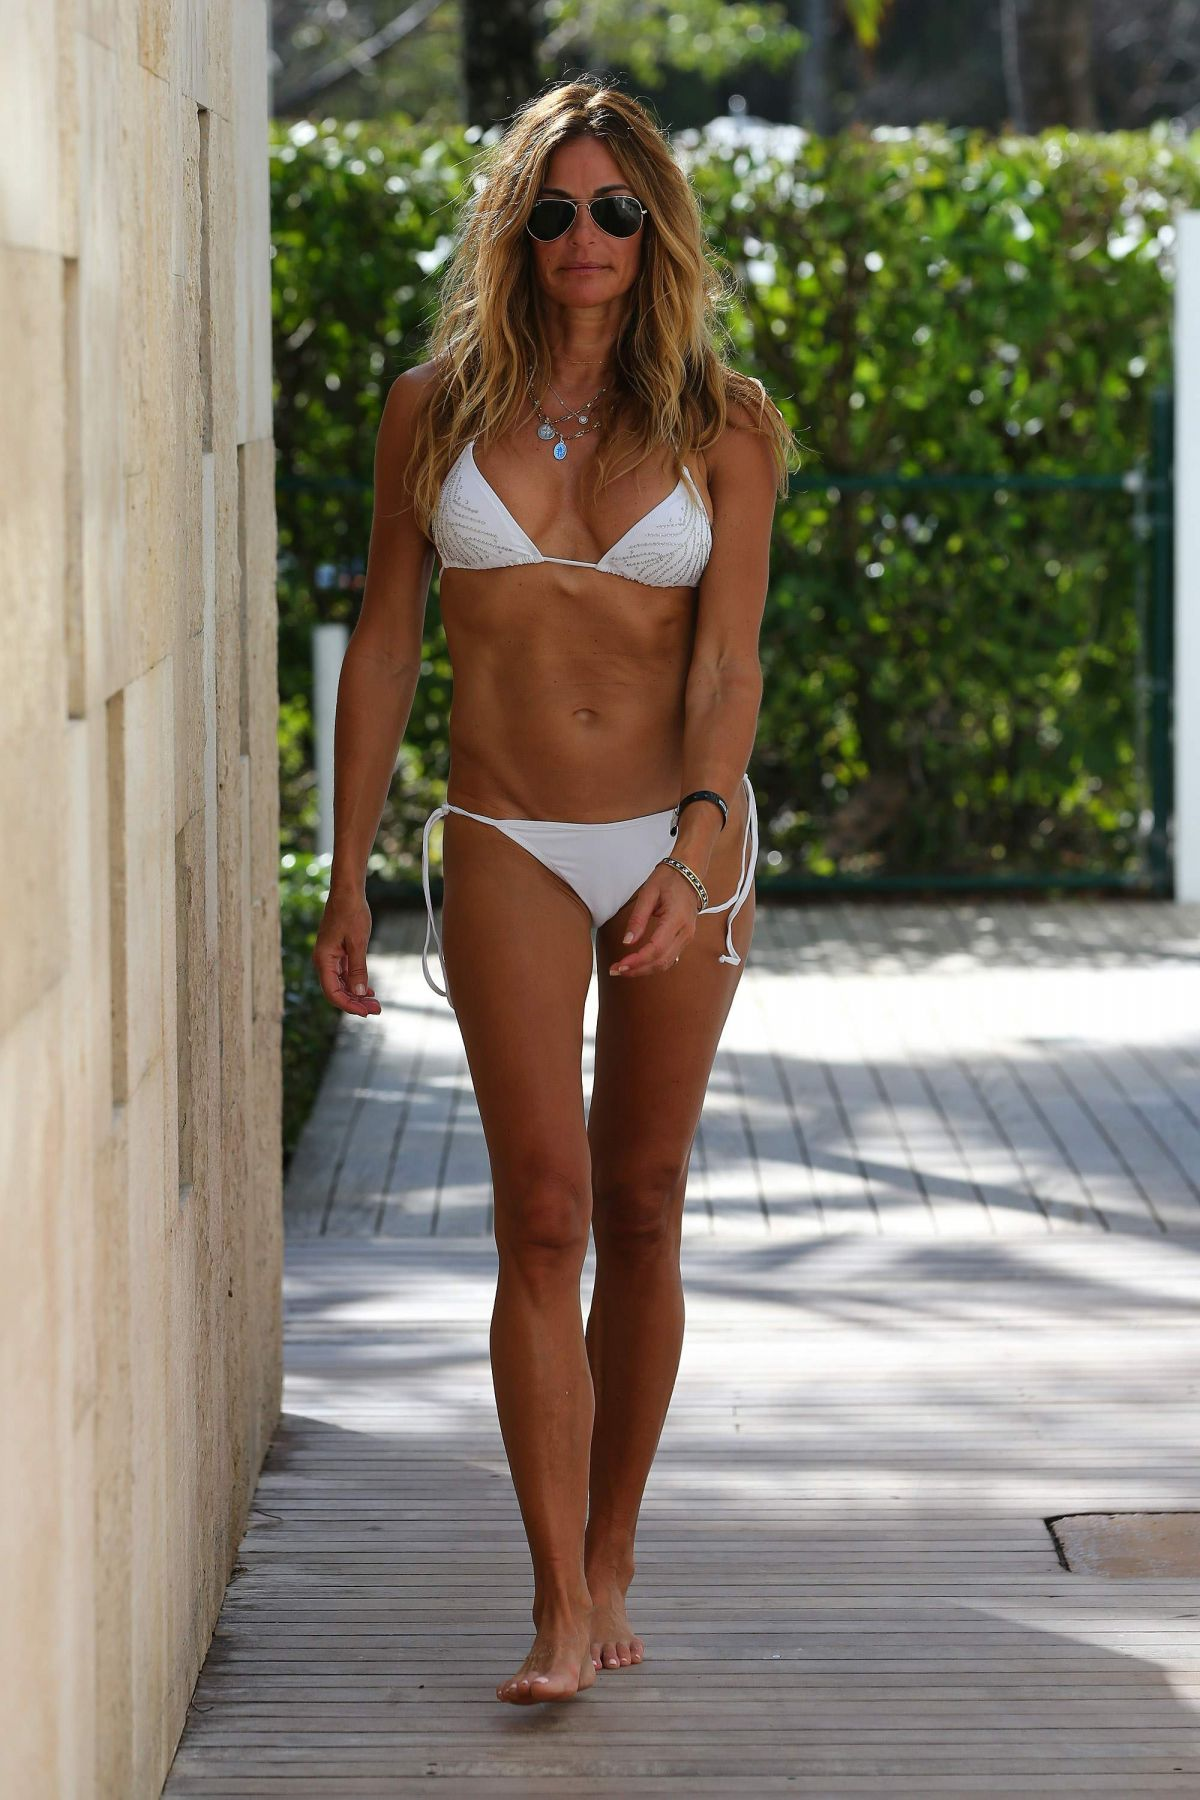 Kelly Bensimon in White Bikini in Miami Pic 4 of 35